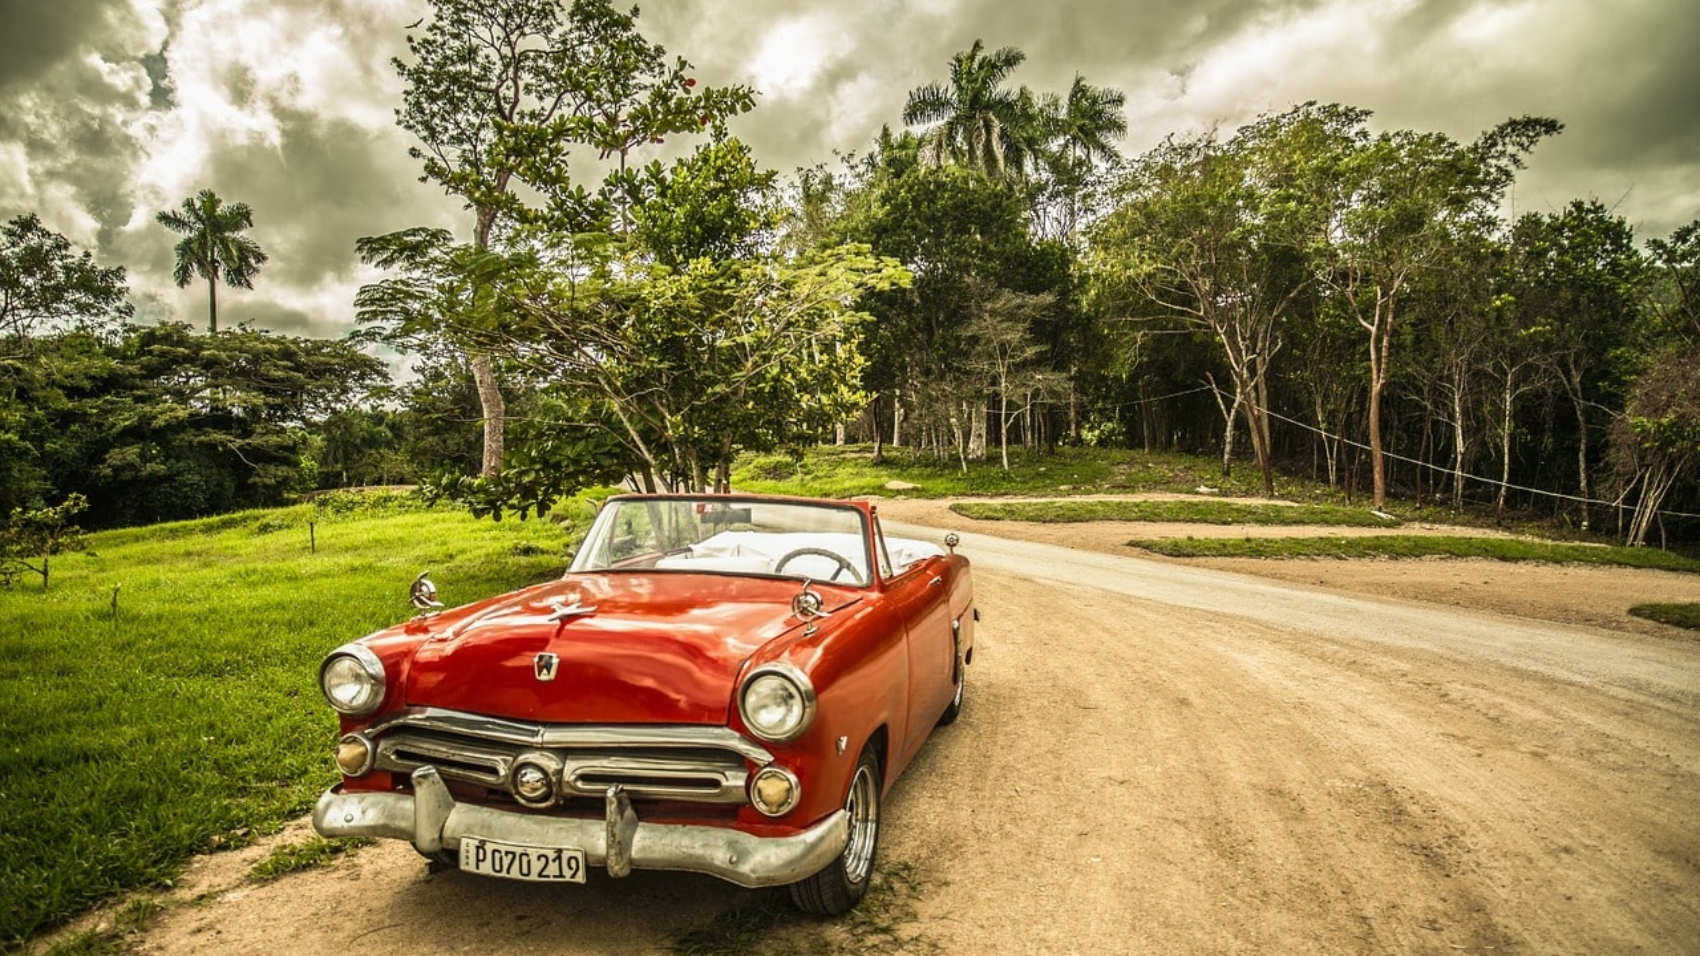 8 Amazing Things About Travel in Cuba